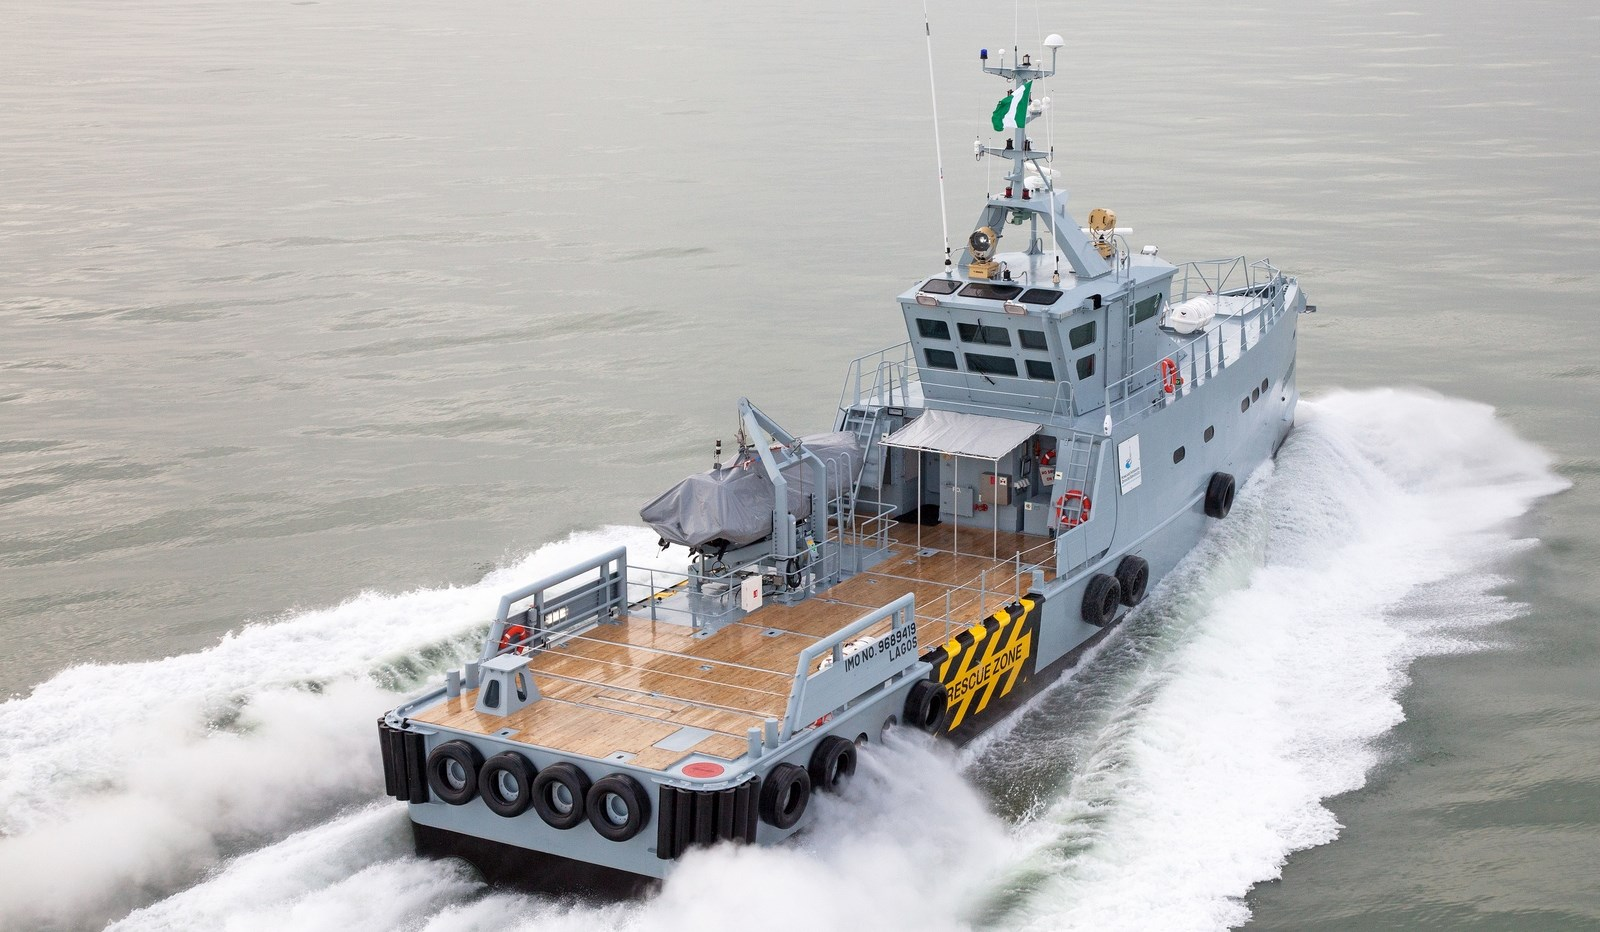 Crew_Supply_Vessel